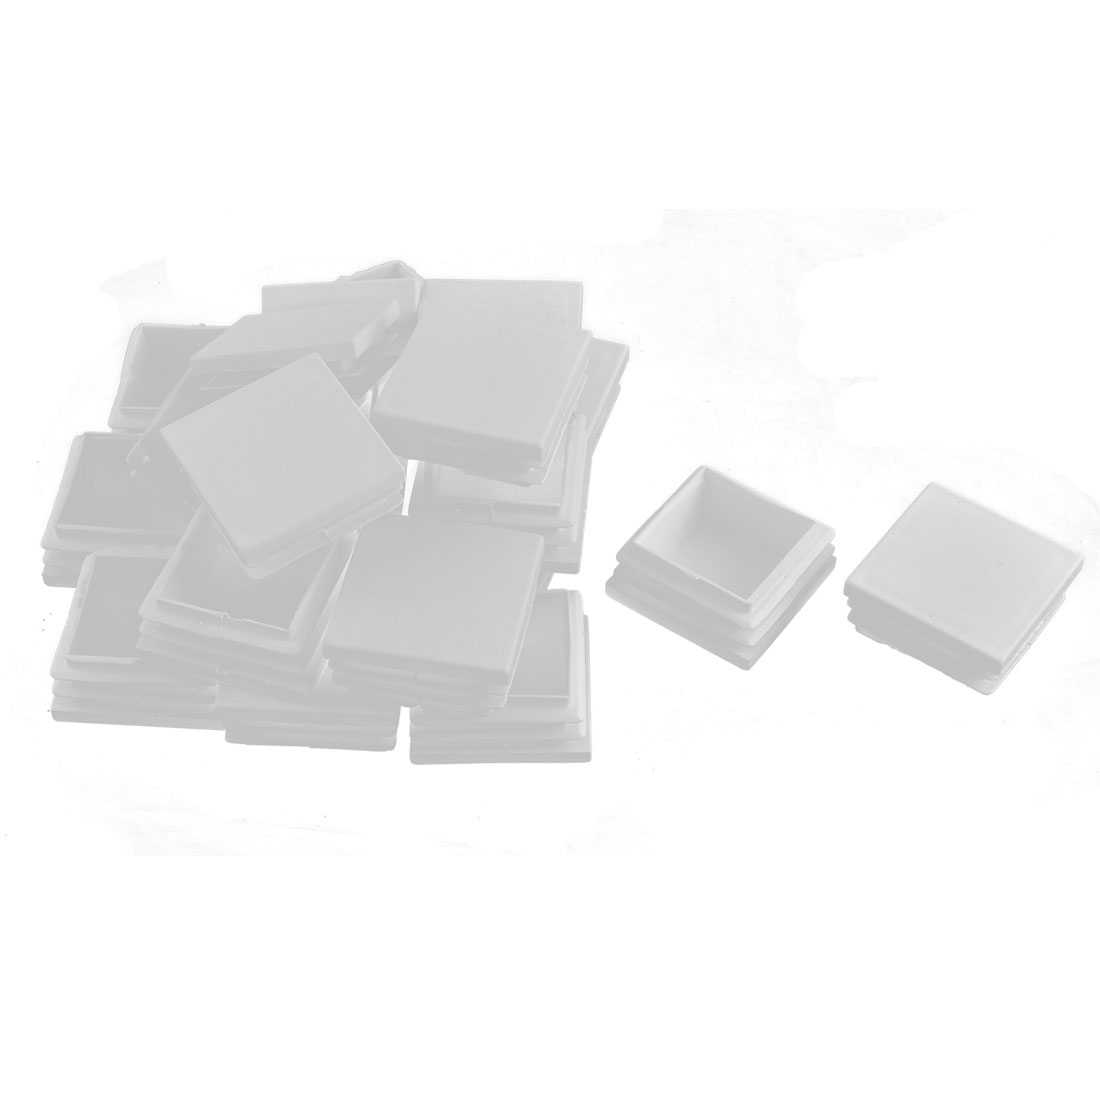 Plastic Square Tube Pipe Inserts End Blanking Caps White 40mmx40mm 20 Pcs